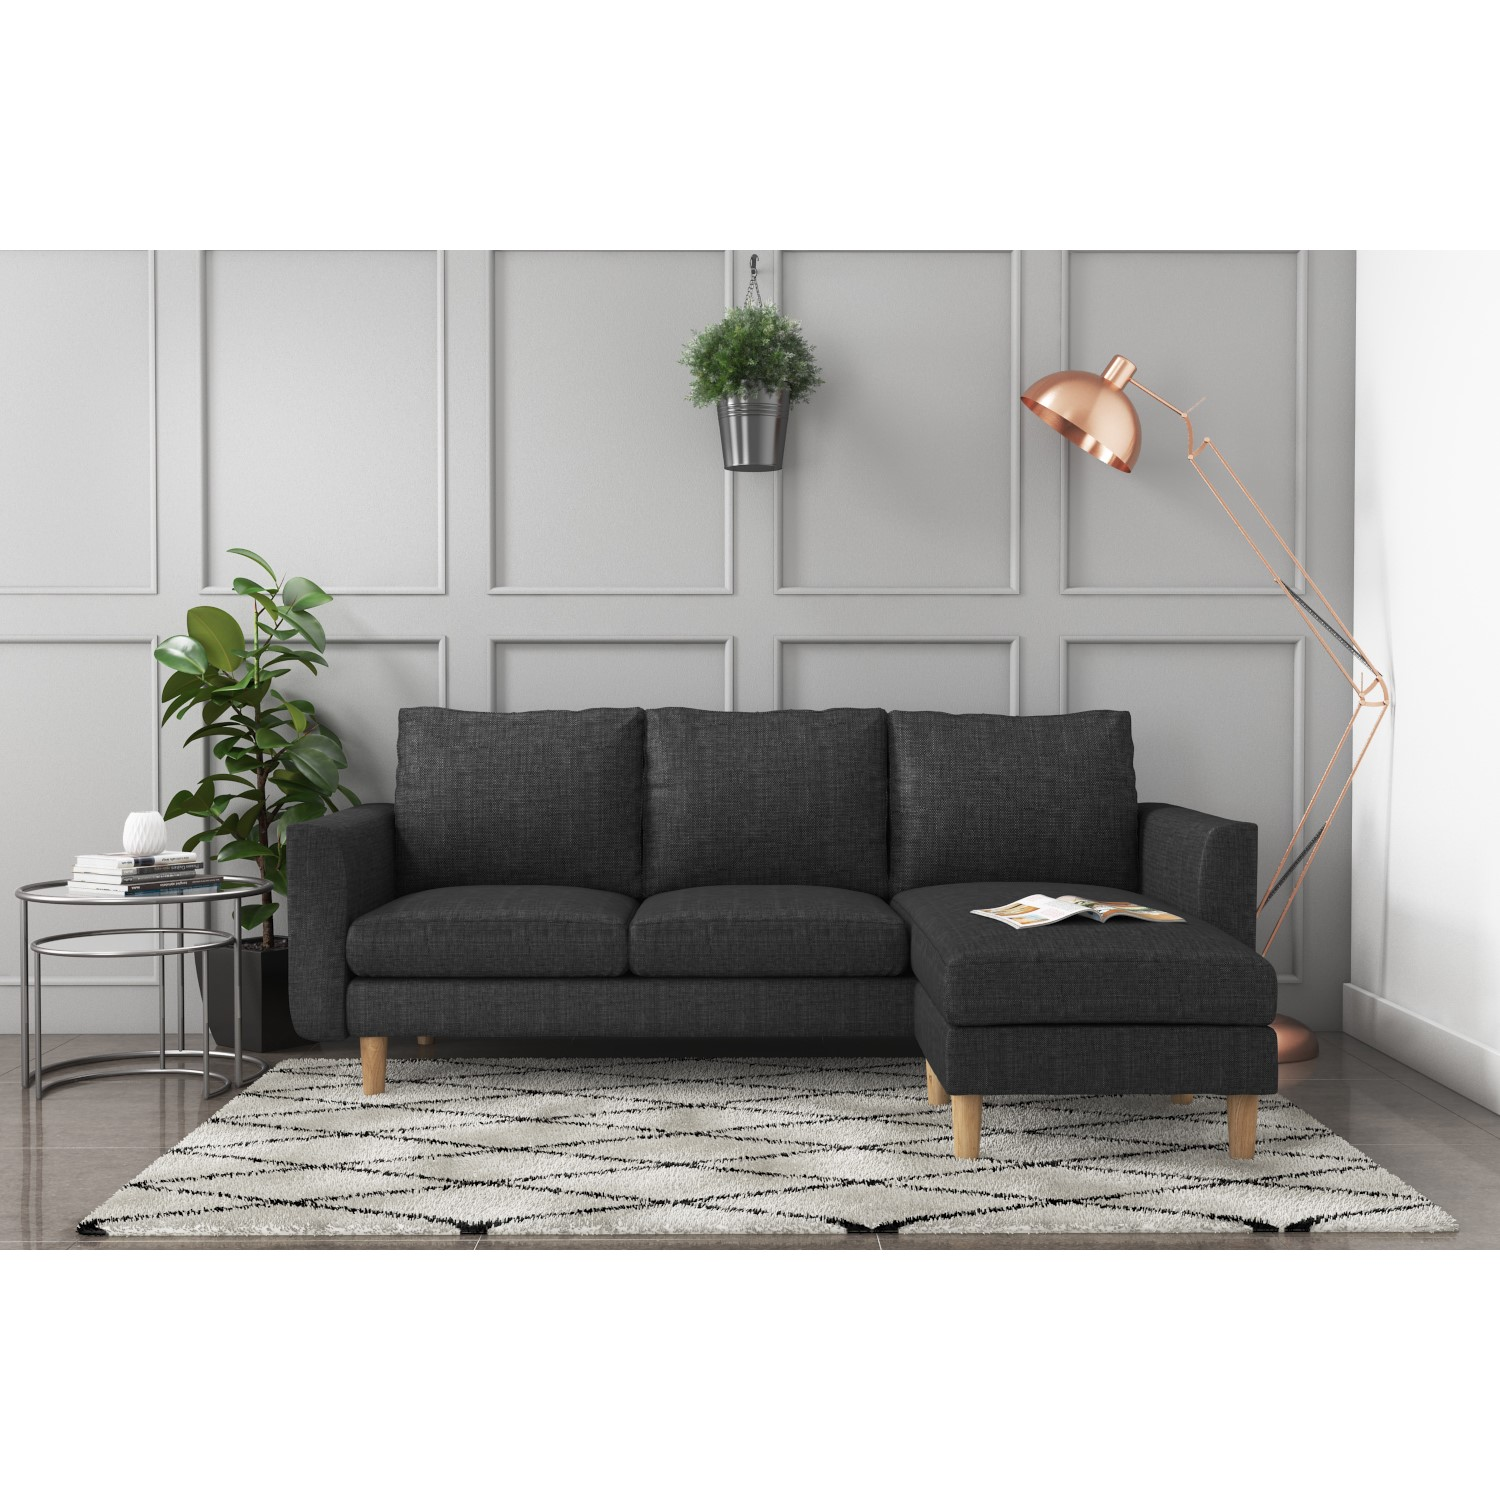 Fabric Corner Chaise Sofa Small 3 Seater Modern Charcoal